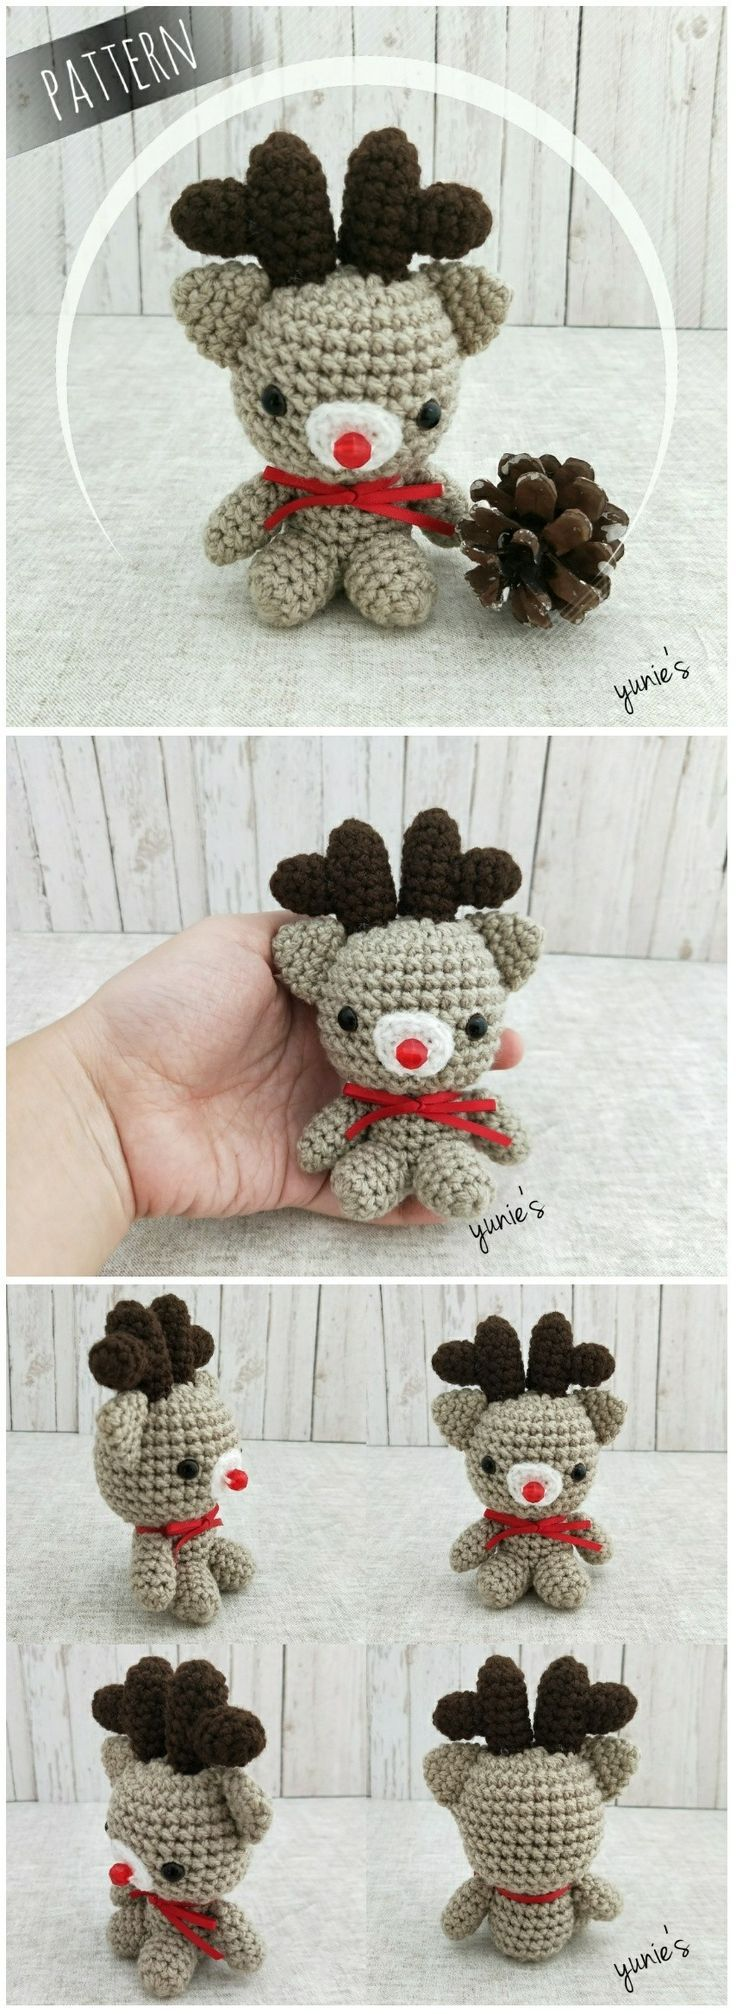 Mini Rena | Crochet Ideas for Christmas